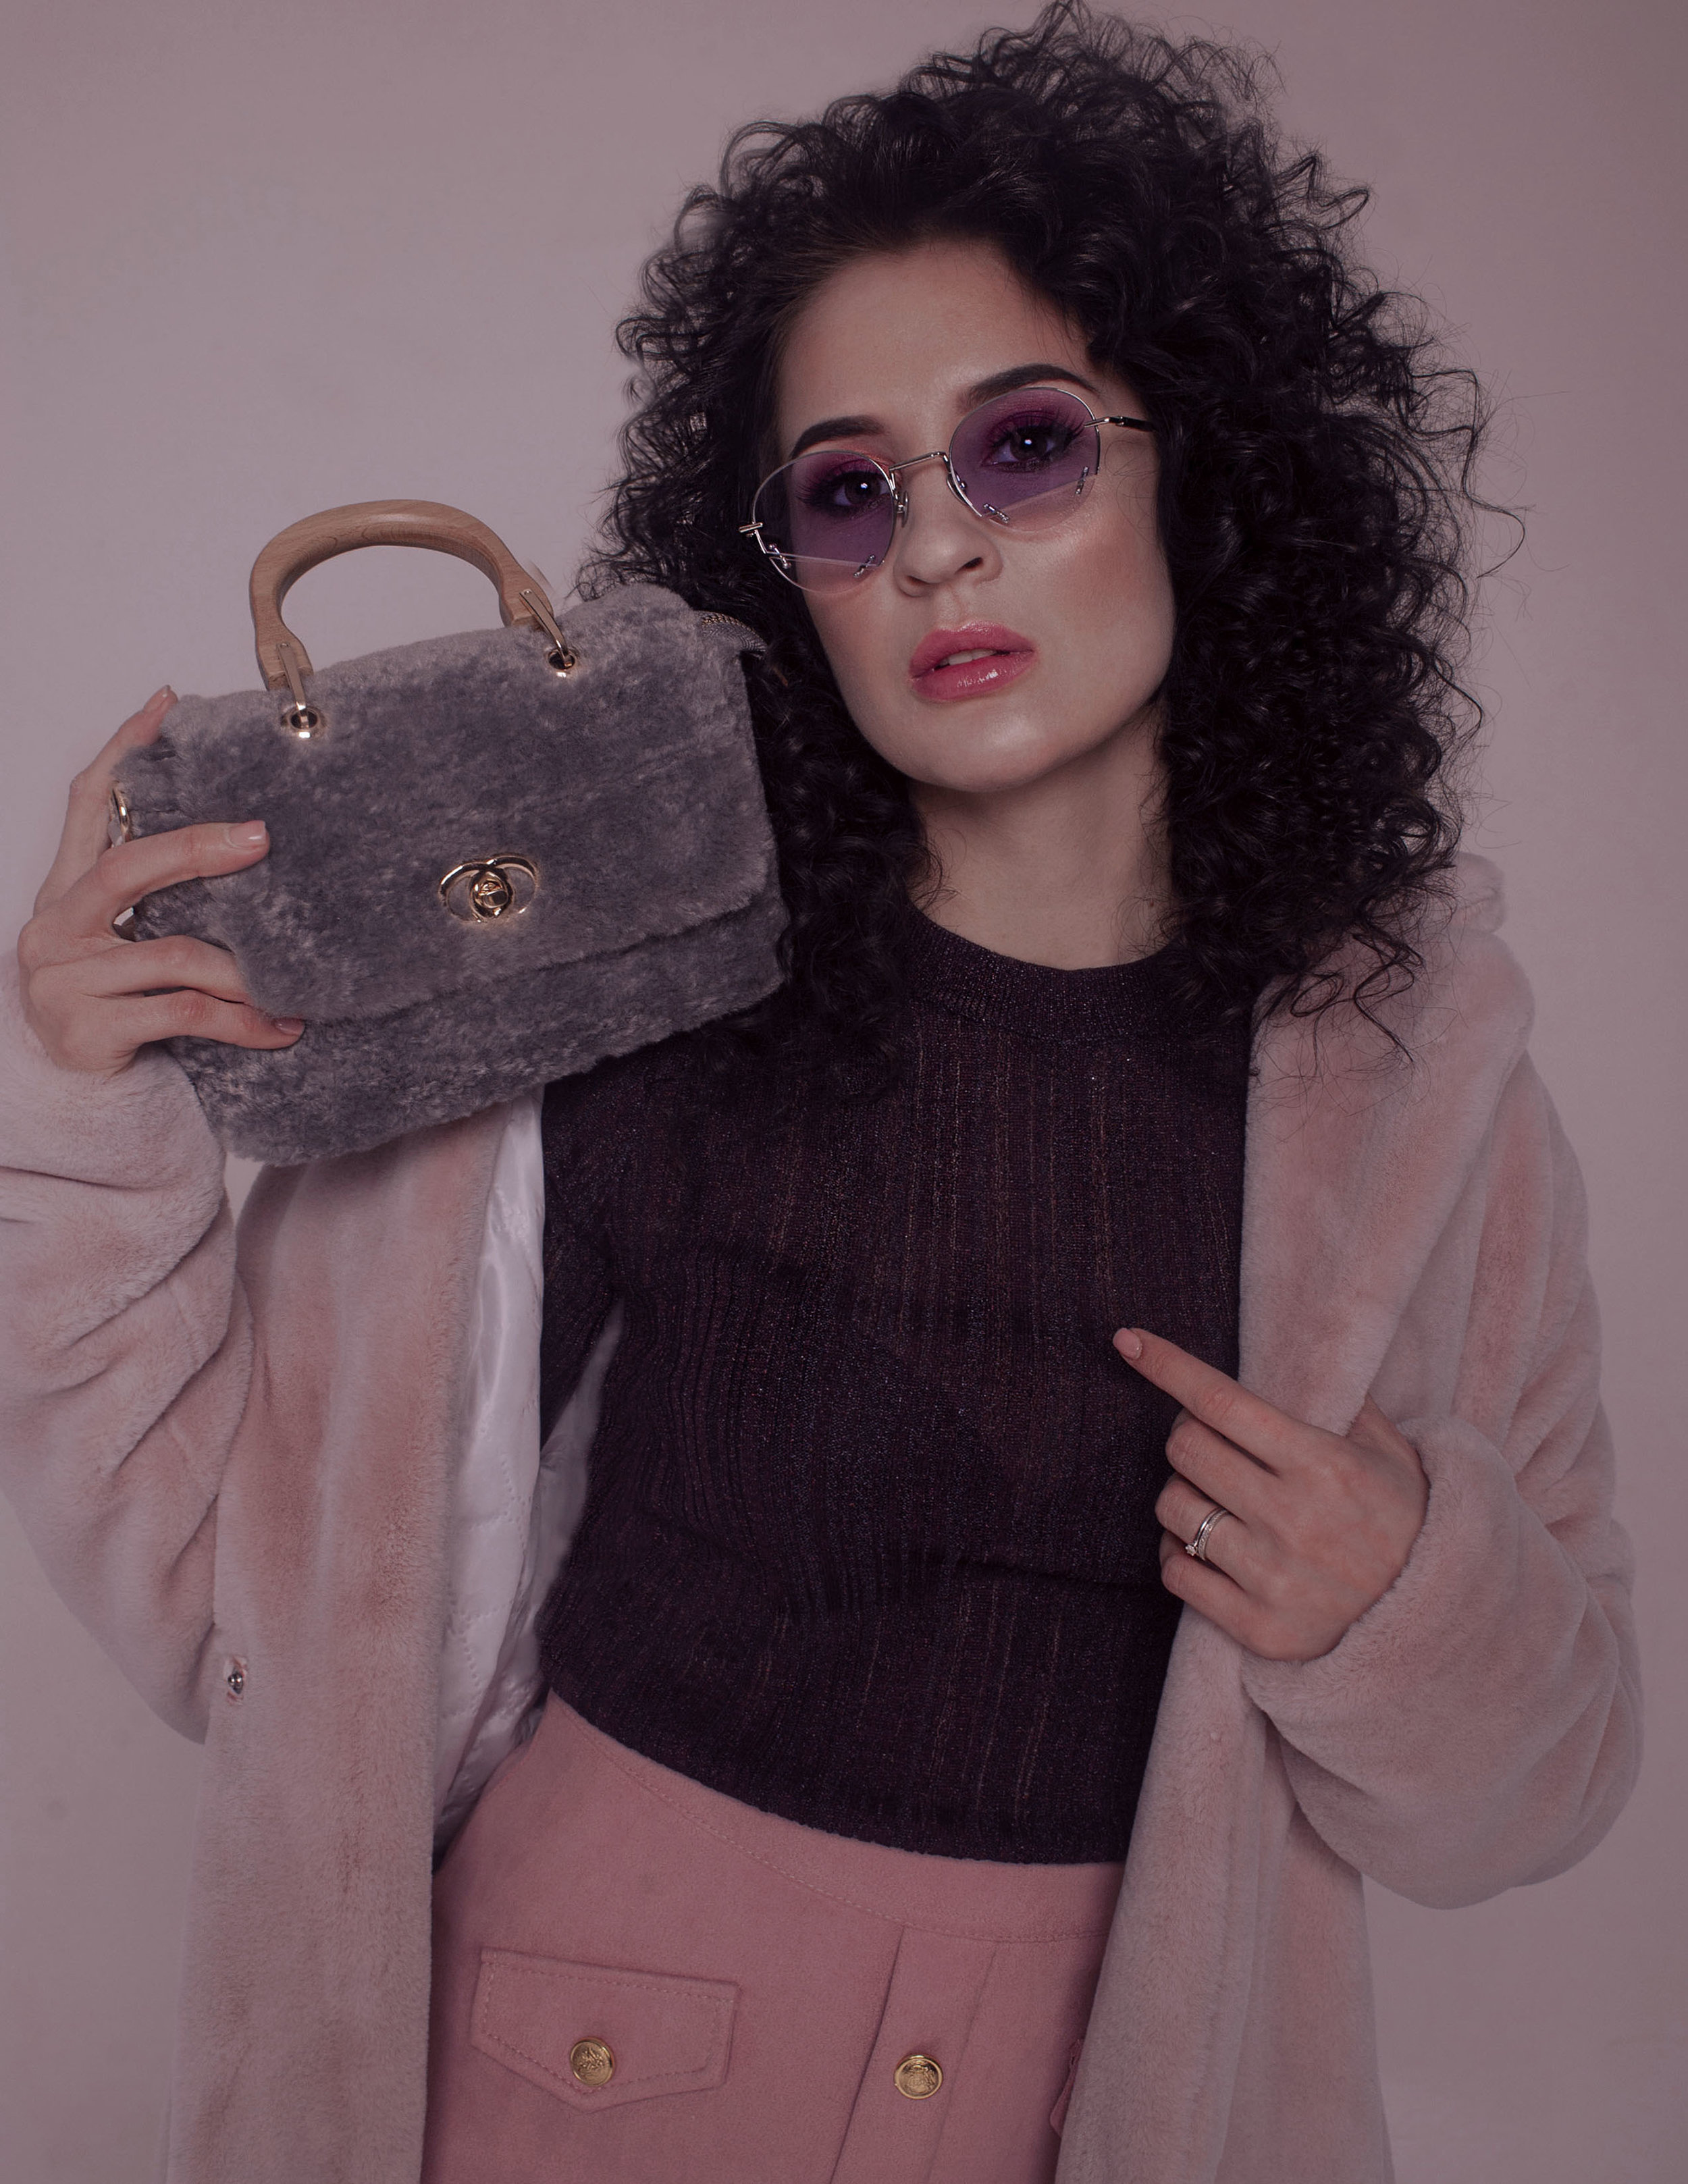 Blouse and Skirt  by Zarina  Fur Coat  by Pinktlt  Bag by Pinktlt  Sunglasses by HAZE